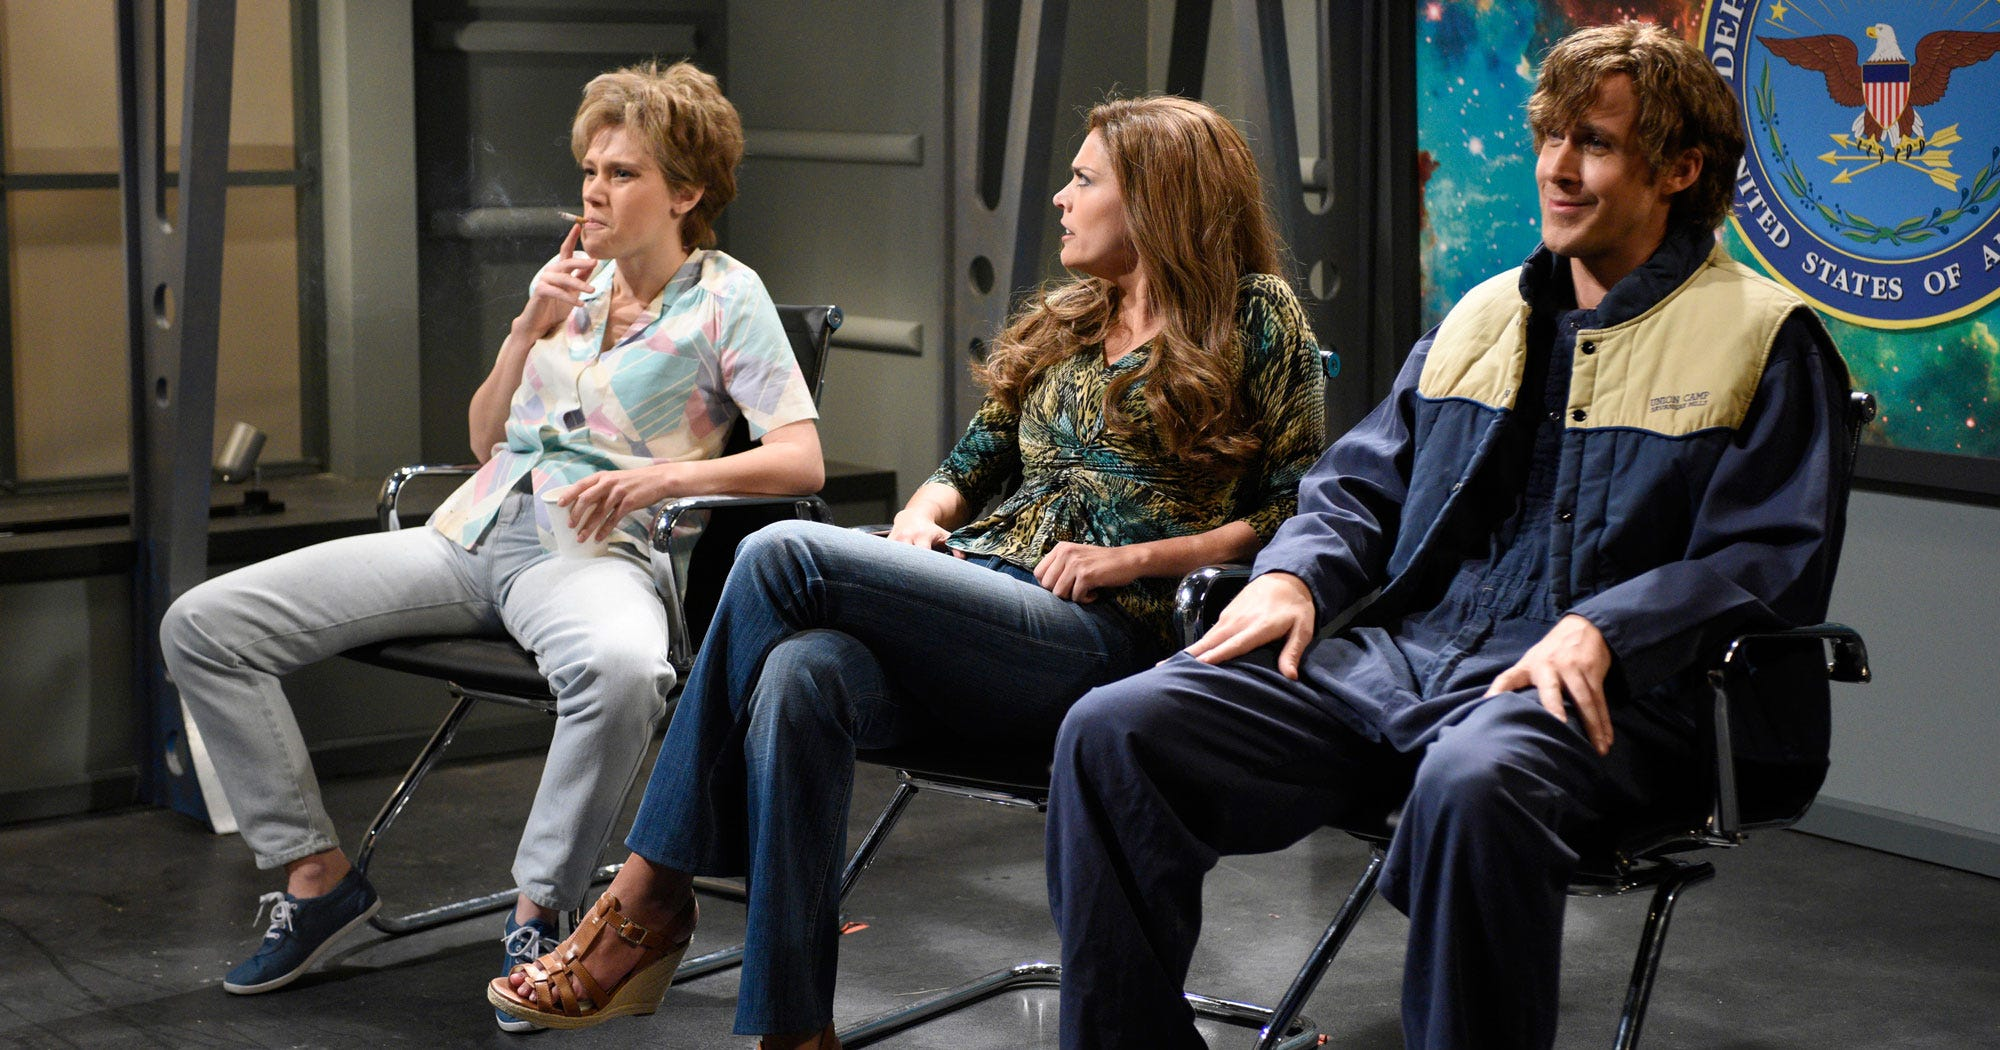 Saturday Night Live What to watch for with host Jonah Hill